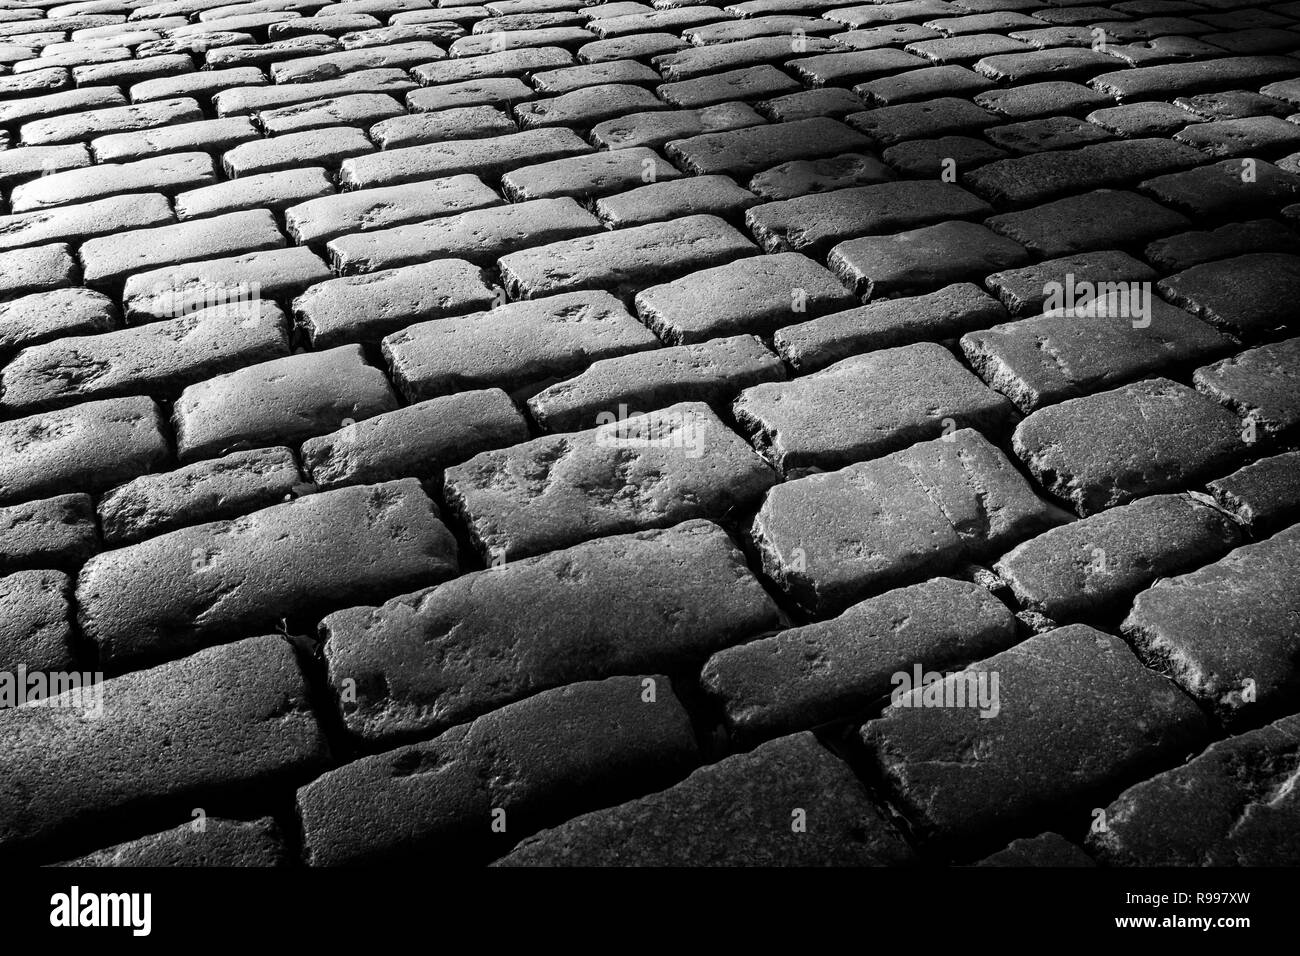 Cobblestone background with long shadows at sunset, London - Stock Image